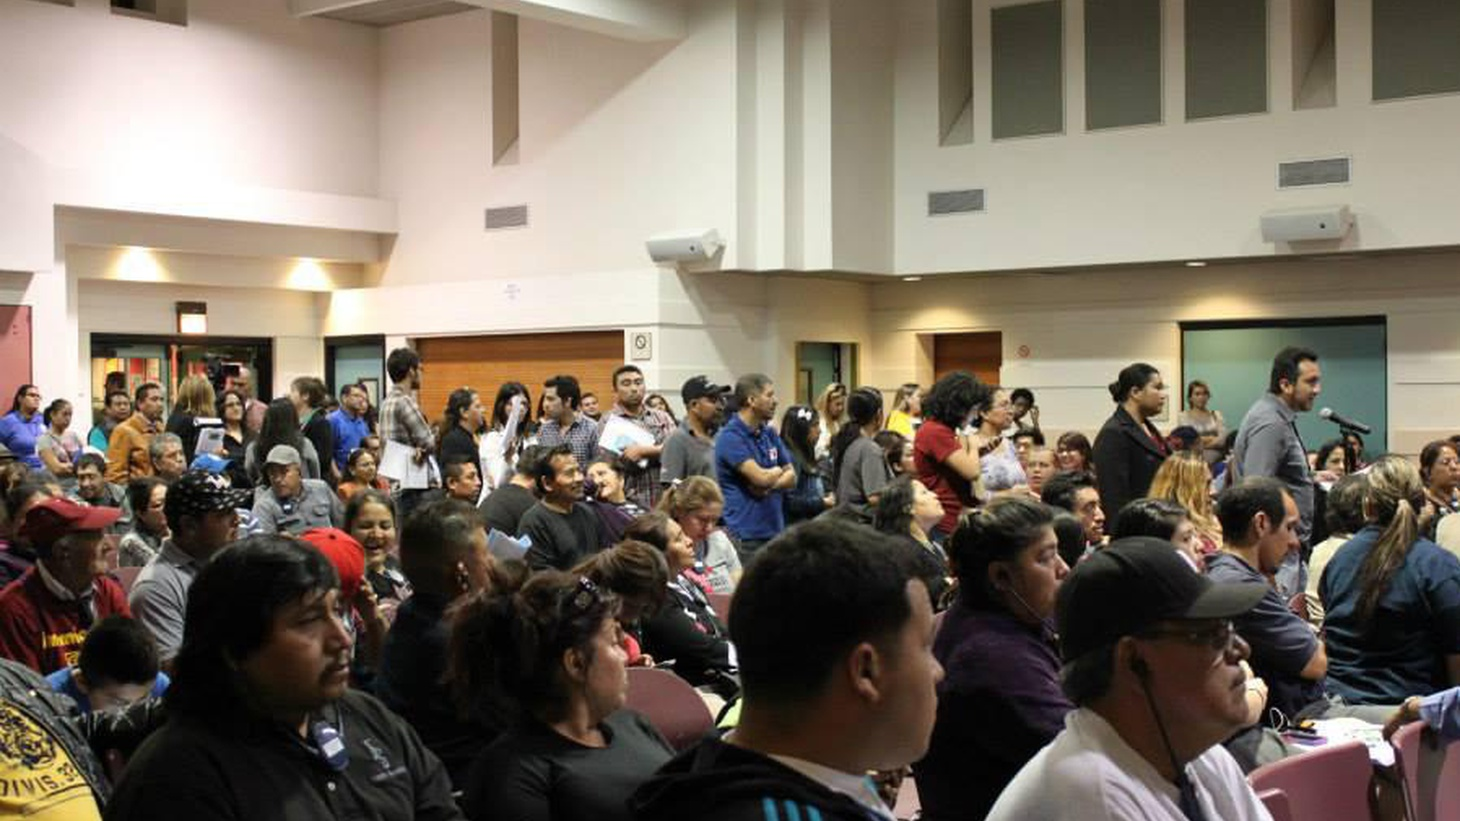 The DMV is bracing for a sudden influx of hundreds of thousands of new test takers as undocumented residents in California begin to apply for driver's licenses.